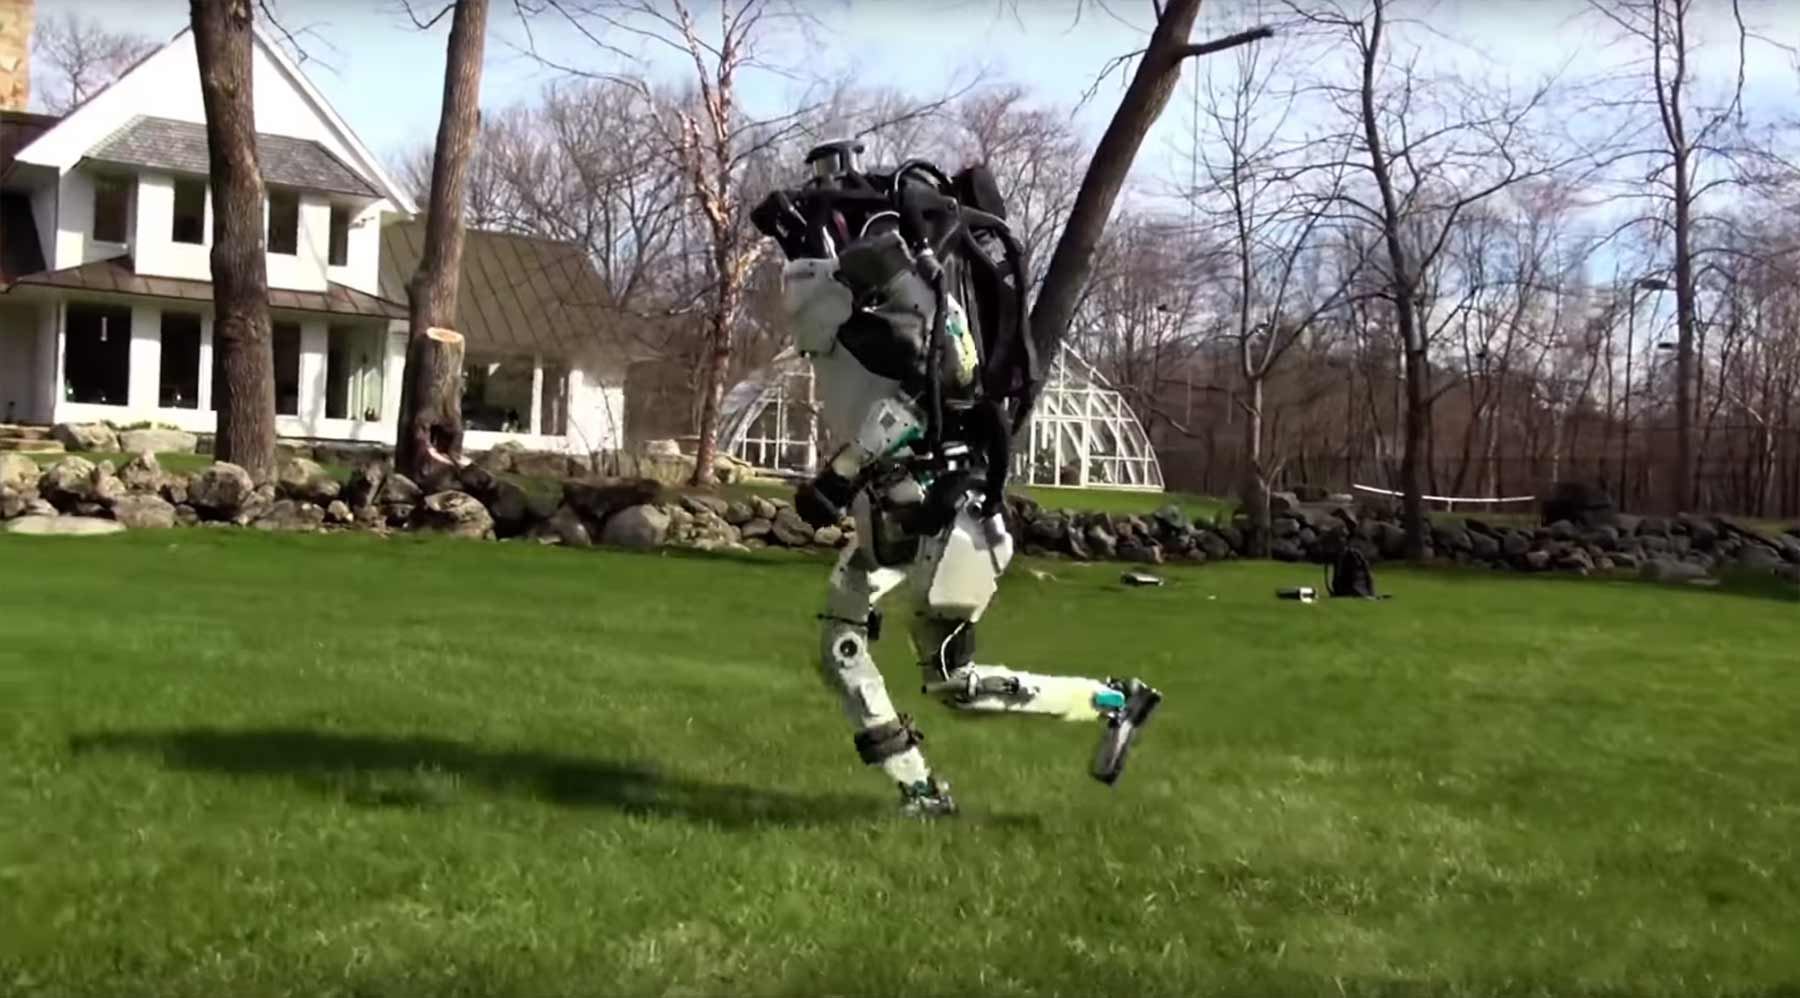 Der Atlas-Roboter von Boston Dynamics auf der Flucht boston-dynamics-atlas-on-the-run